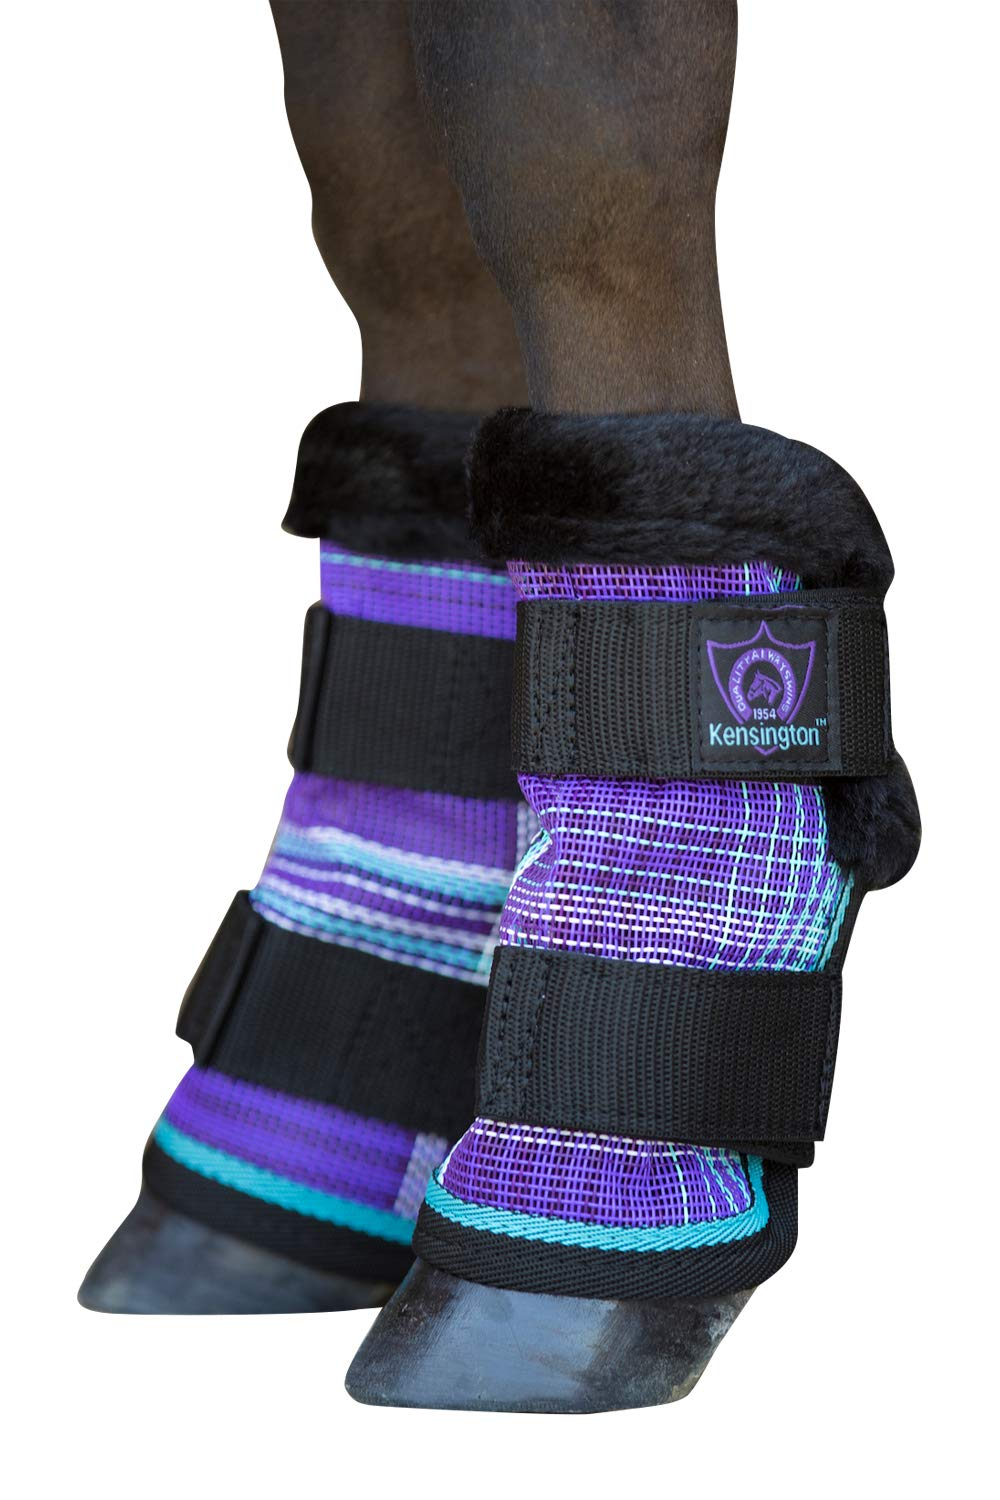 Kensington Pony Fly Boots with Comfortable Fleece Trim - Stay-Up Technology with Straps - Protection from Insect Bites and UV Rays - Set of 4